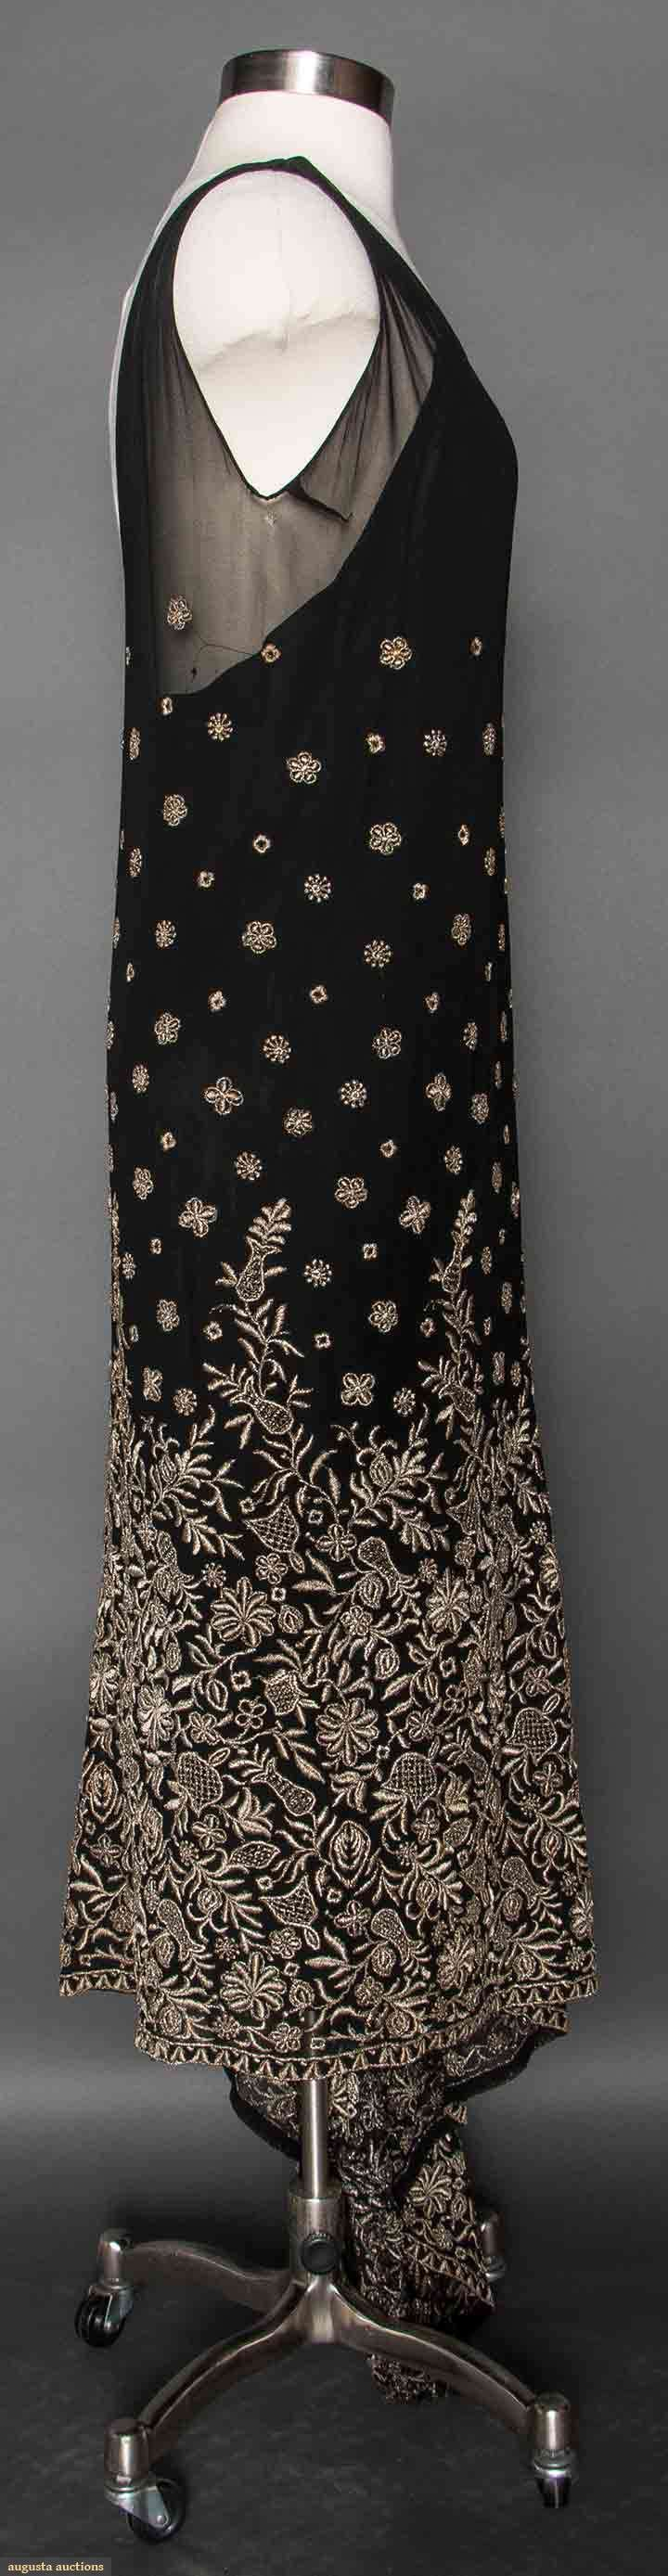 EMBROIDERED BLACK SILK DRESS, 1920s. Silk chiffon, sleeveless, angled hemline, bottom skirt half densely embroidered in metallic silver floral pattern. Sideway